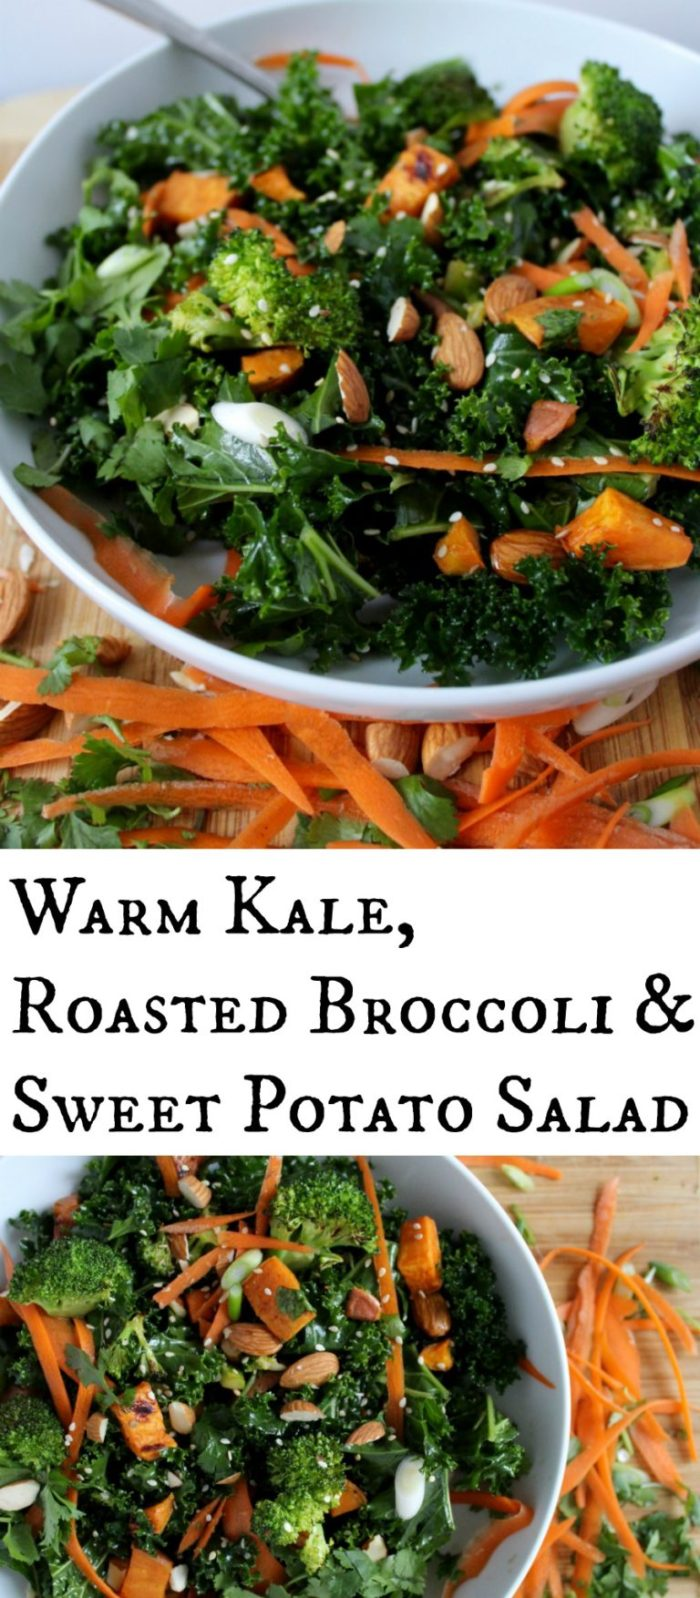 Warm Kale, Roasted Broccoli and Sweet Potato Salad with Sesame Vinaigrette. So good and healthy!!